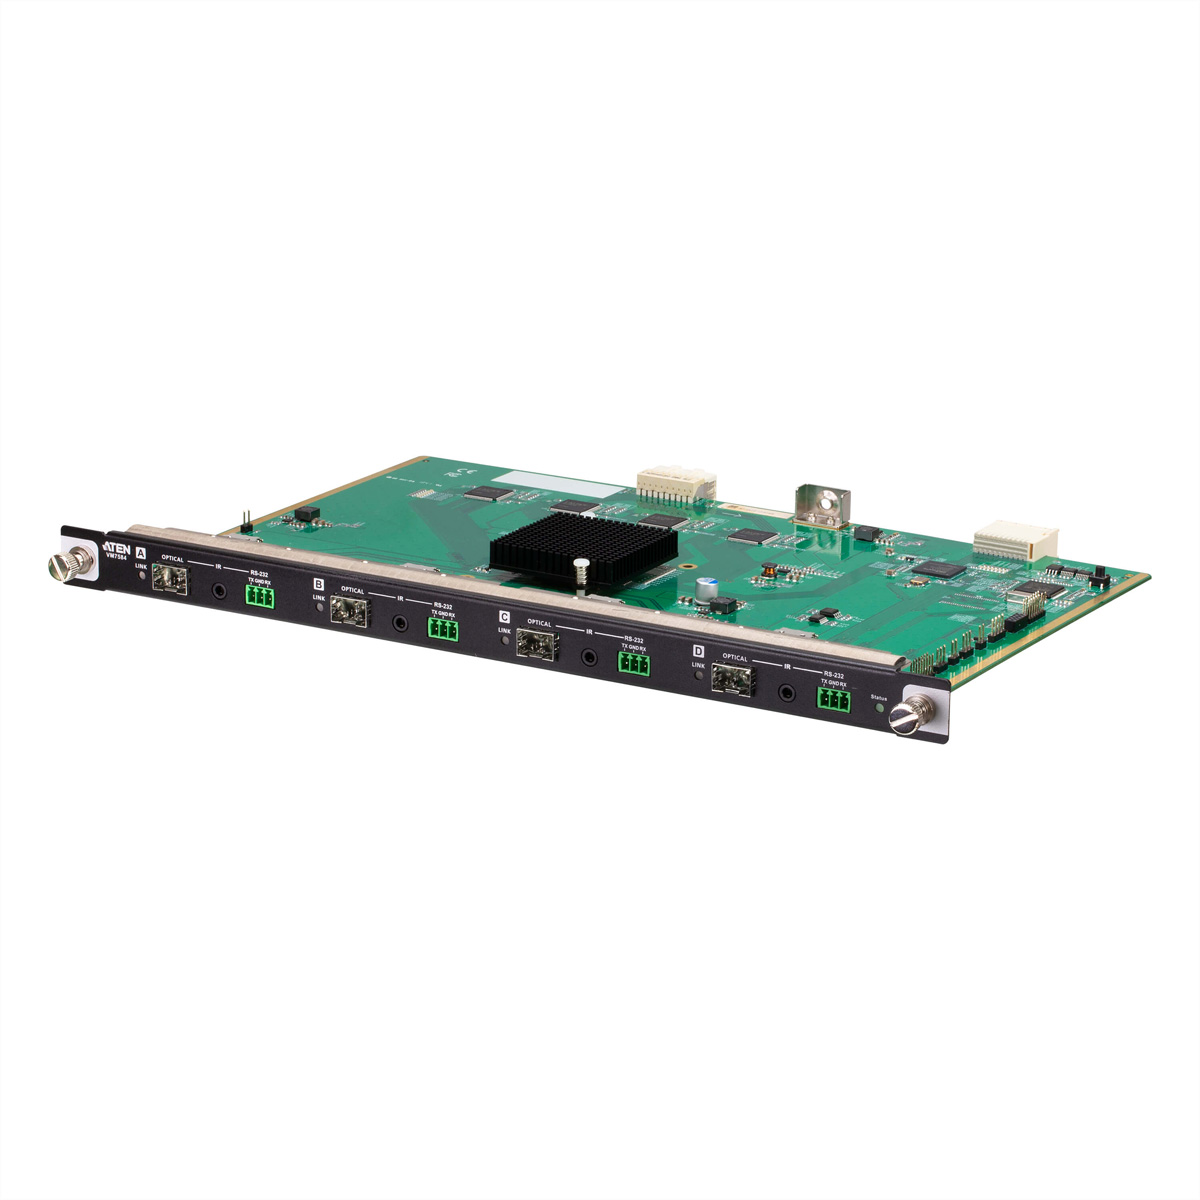 ATEN VM7584K1 4-Port 10G Optical Input Board 4K 300M